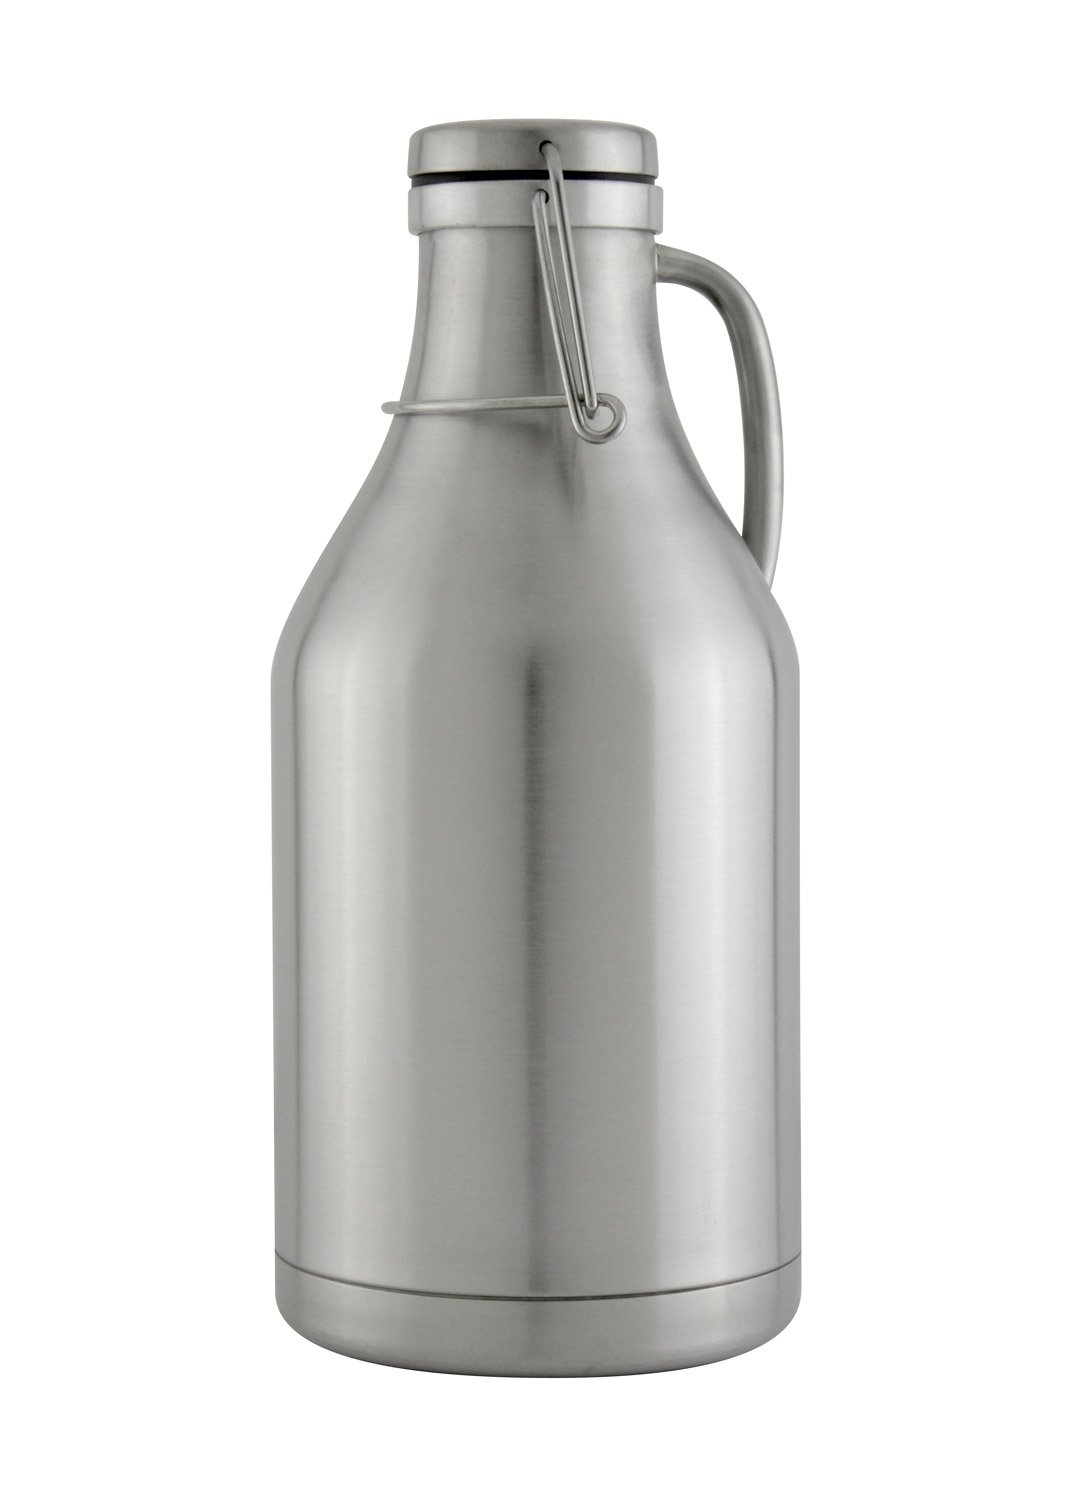 The Grizzly - 64 oz Double Wall Stainless Steel Flip Top Beer Growler - Stainless Steel